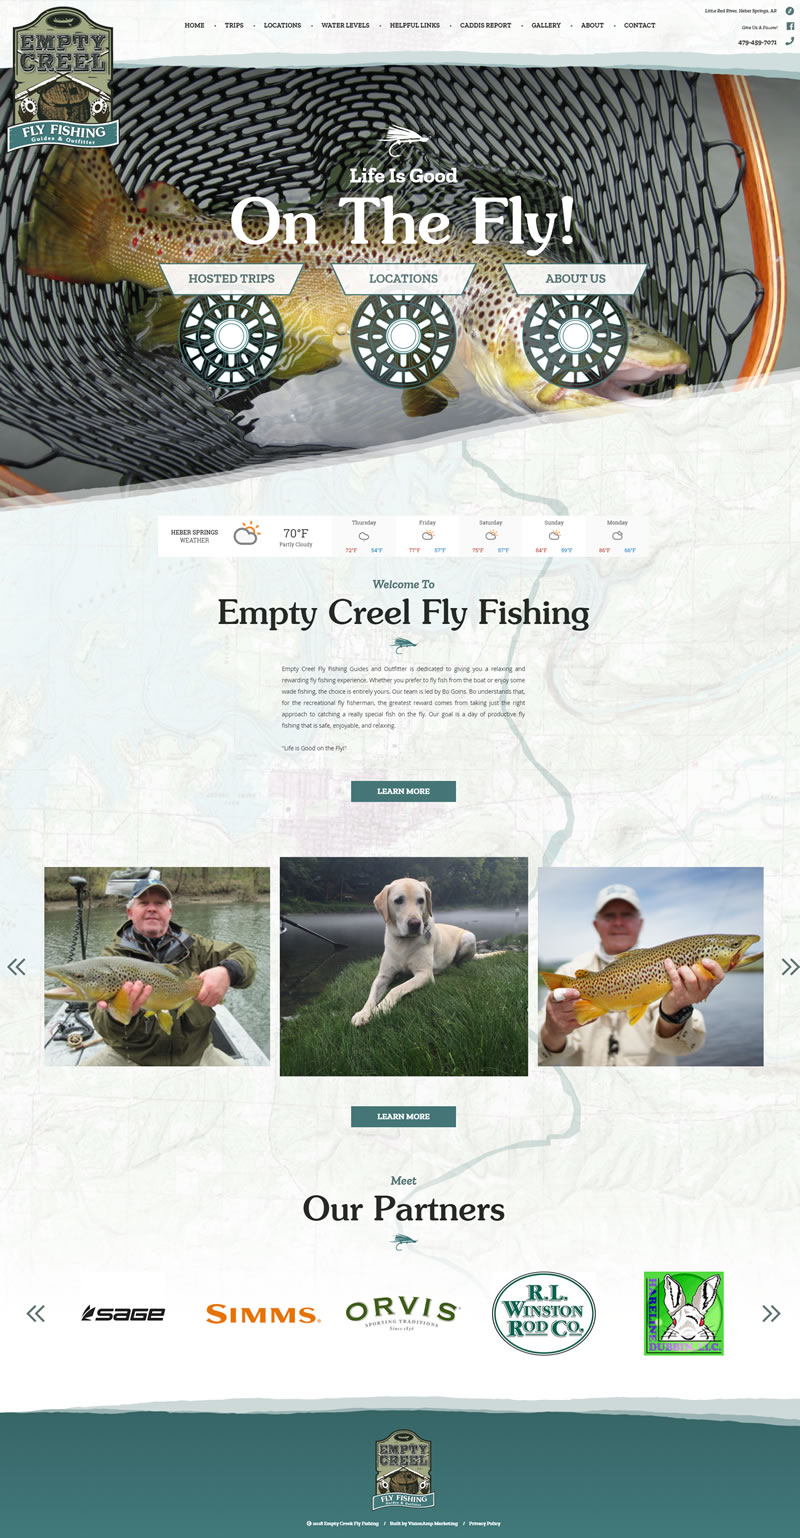 Empty Creel Fly Fishing Full Web Design Image